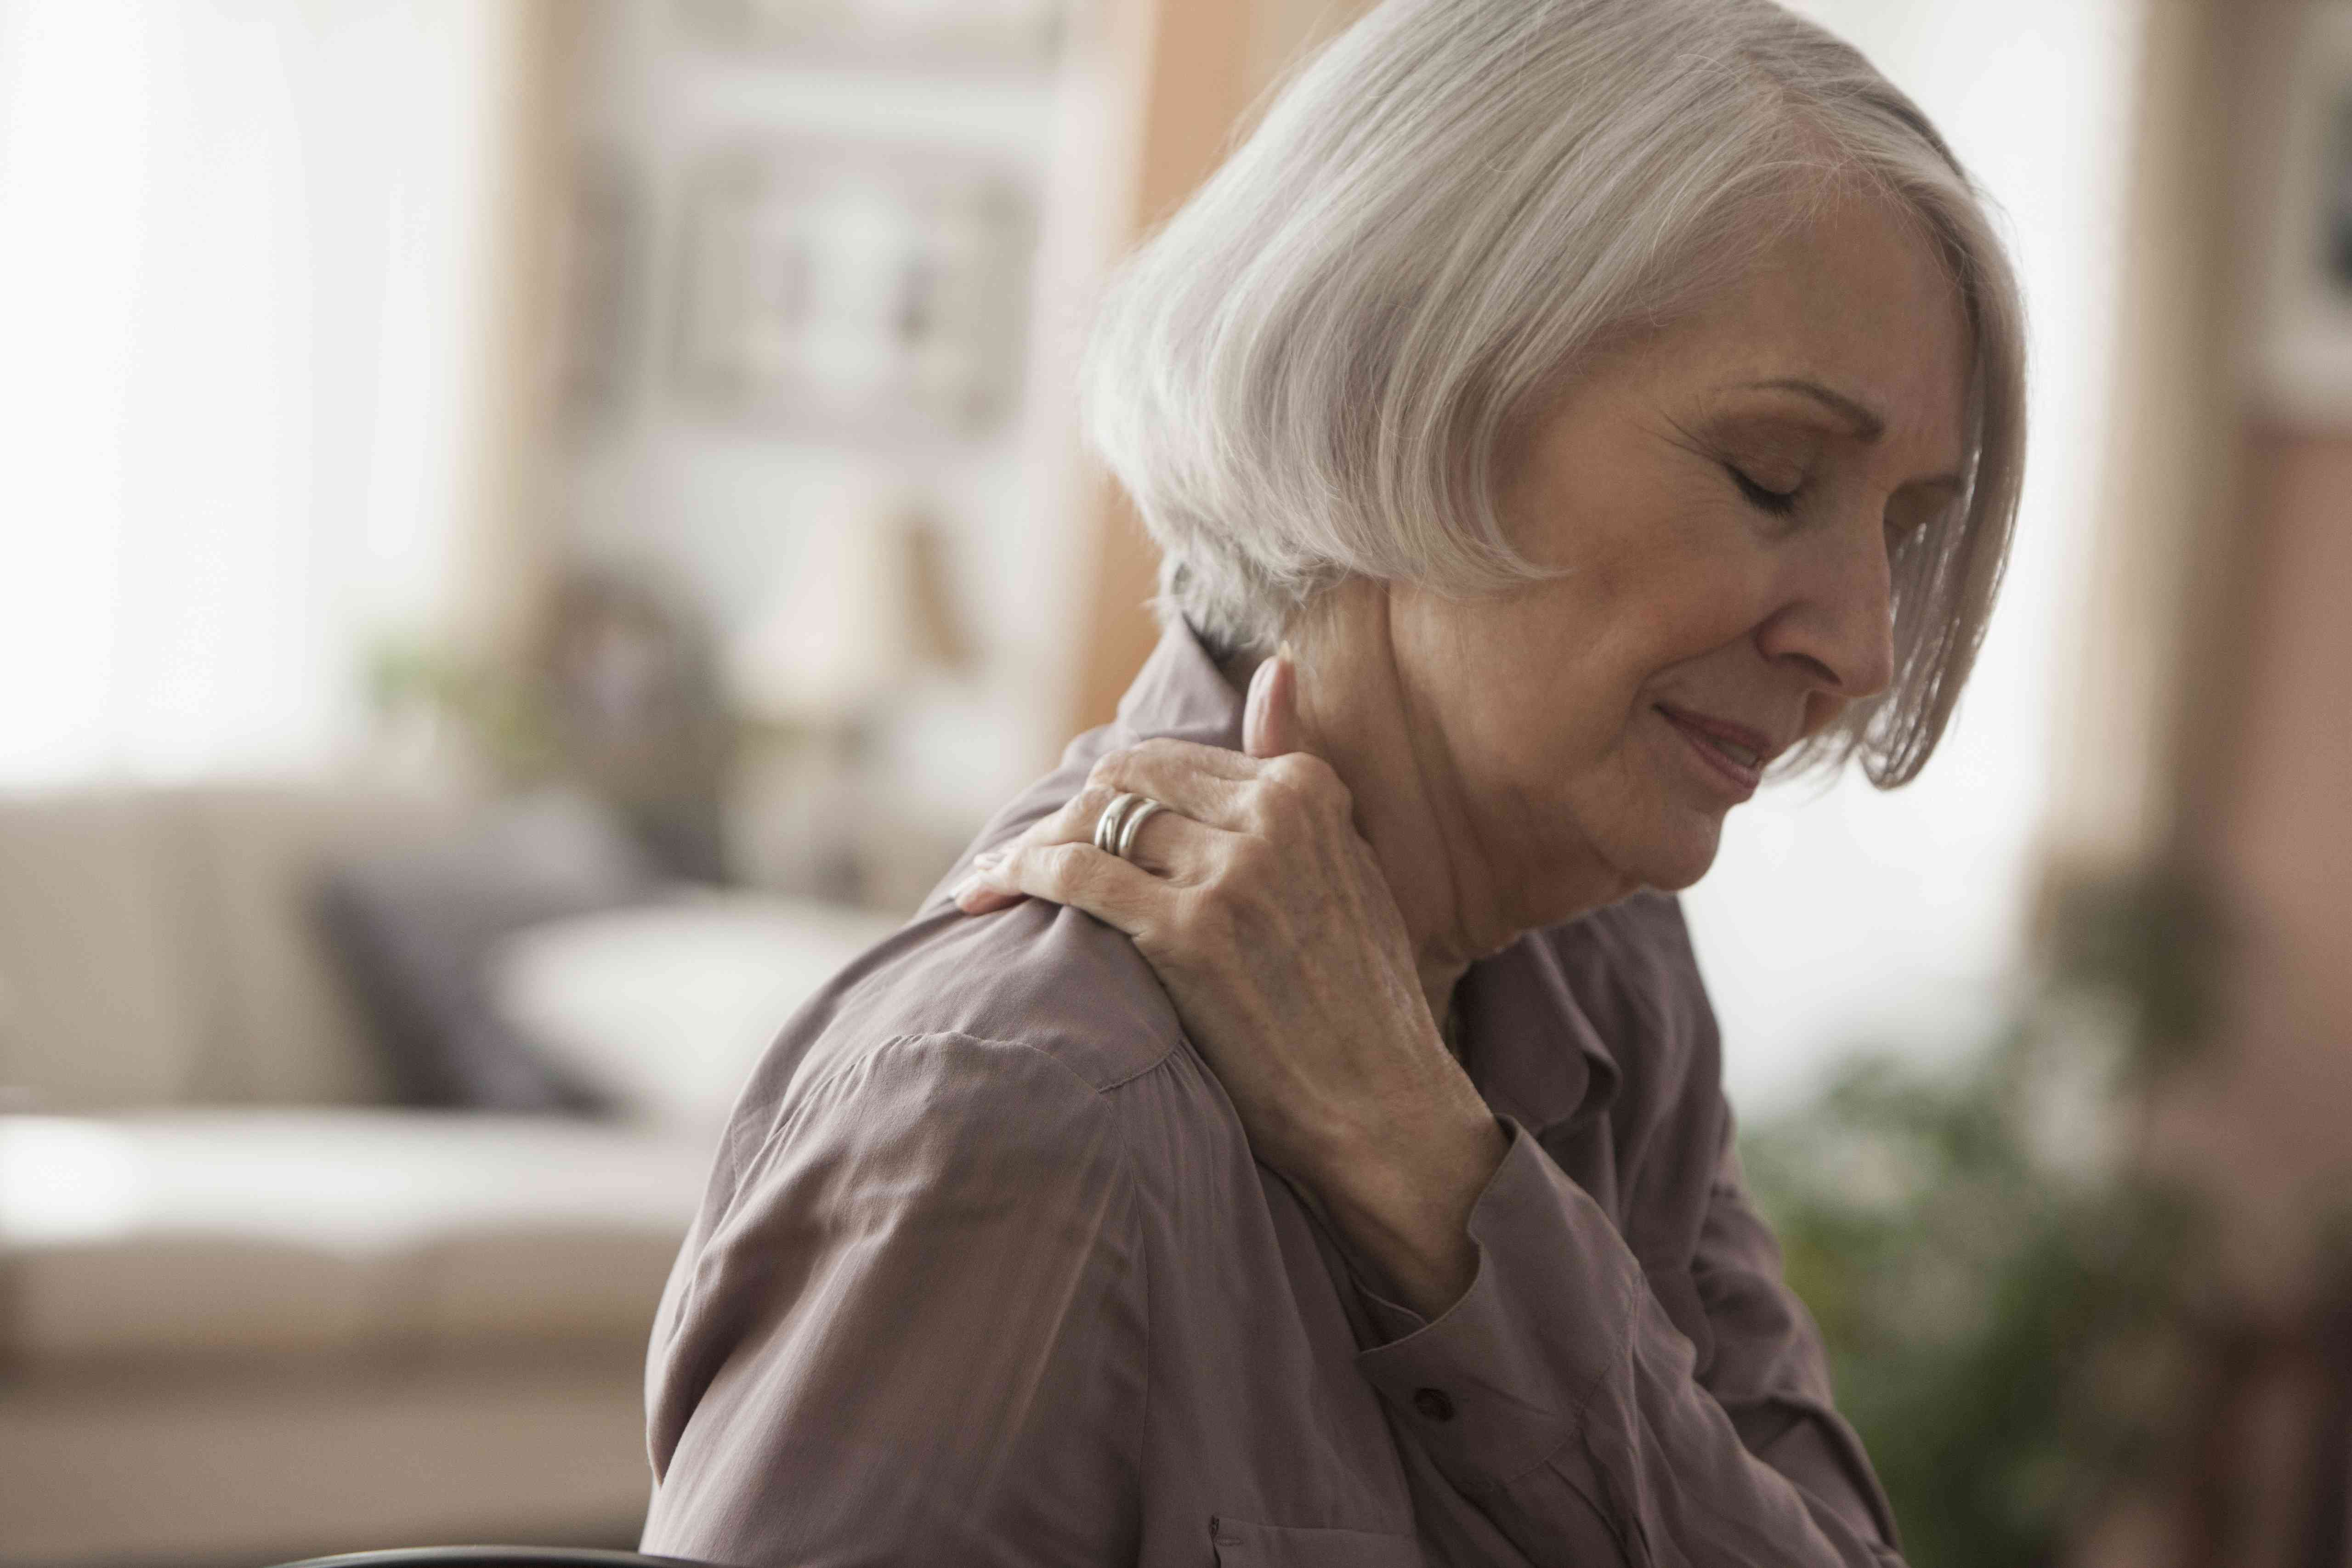 An elderly woman clutches her painful shoulder.